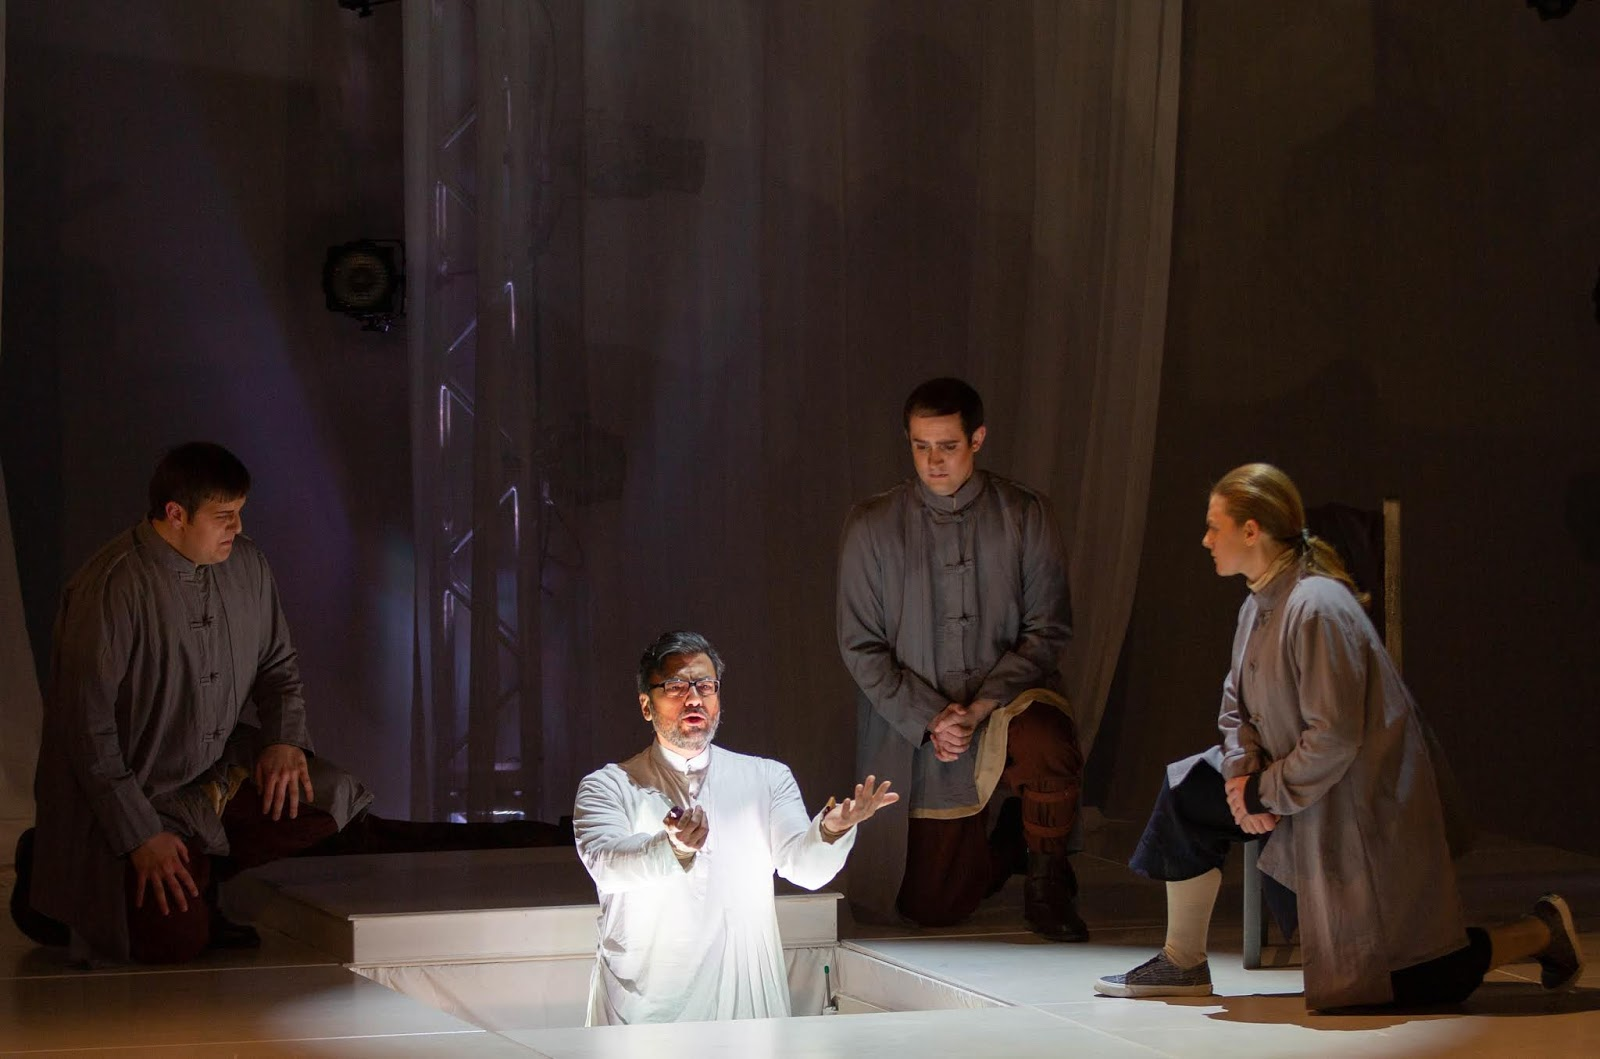 IN REVIEW: bass MATTHEW TREVIÑO as Seneca (center), with (from left to right) tenor NICHOLAS HUFF, baritone NATHANIEL HILL, and soprano NICOLE HEINEN as Seneca's followers, in Florentine Opera's March 2019 production of Claudio Monteverdi's L'INCORONAZIONE DI POPPEA [Photograph by Kathy Wittman, © by Ball Square Films]